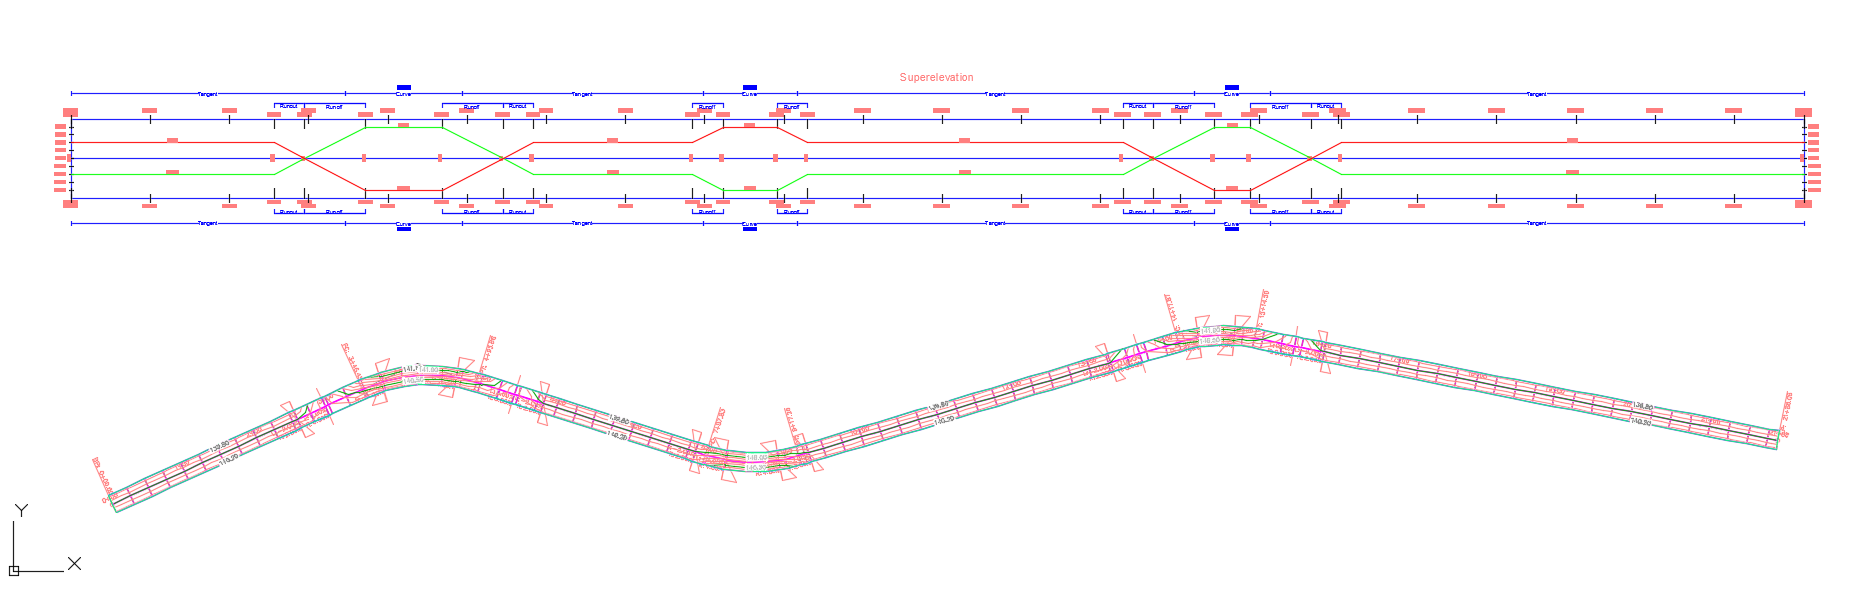 How to Superelevate a Planar Roadway in Civil 3D 2016 | Search